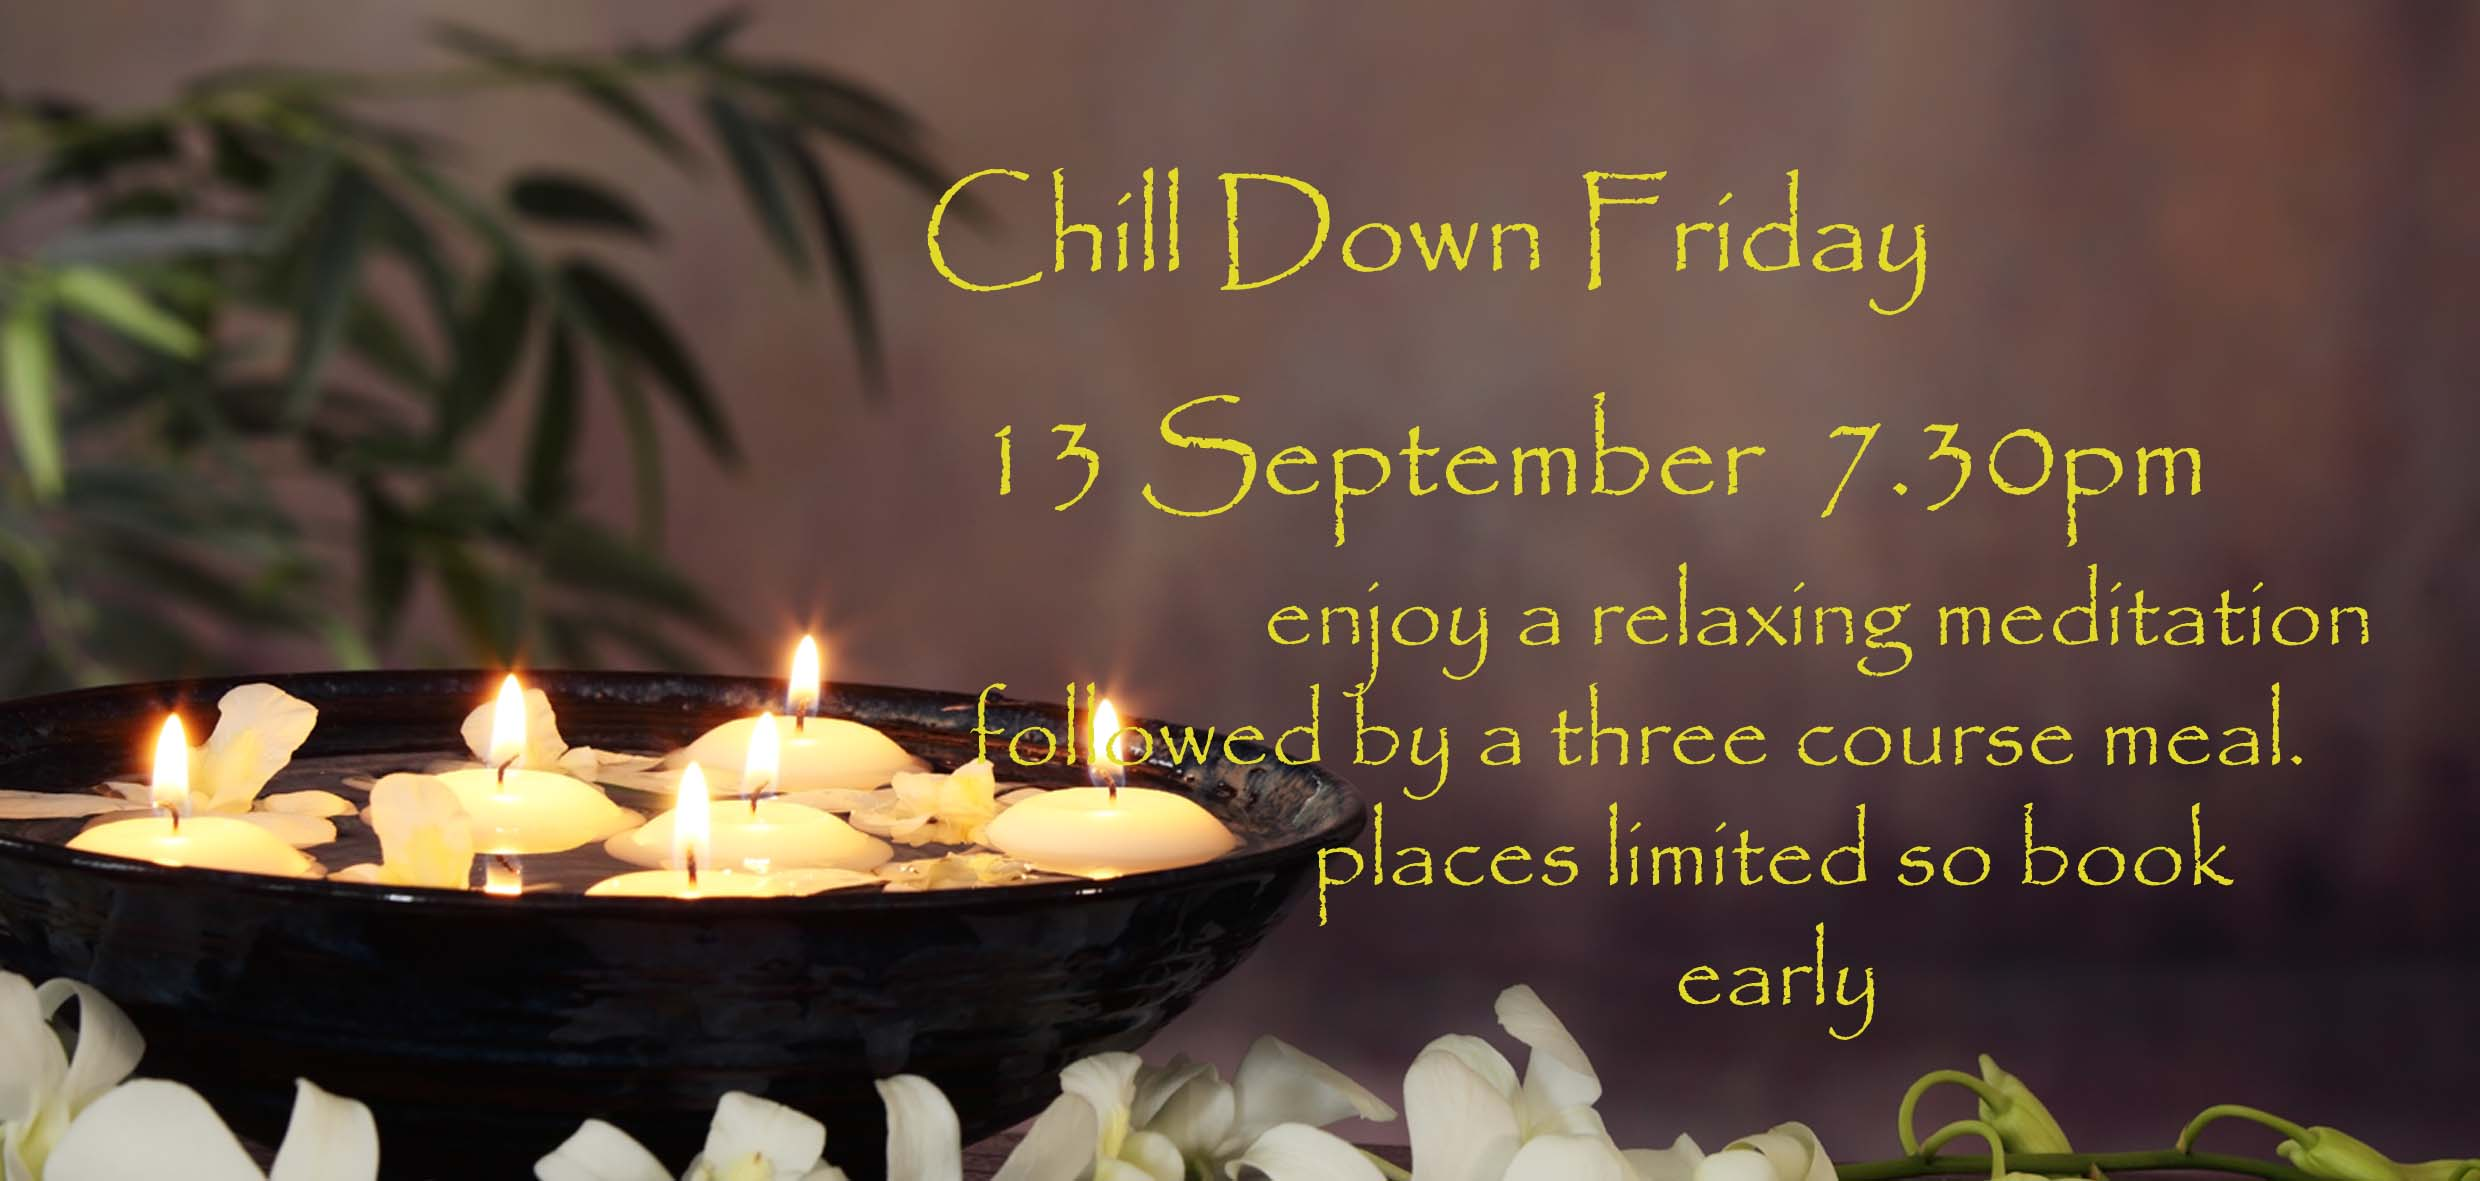 Chills Down Friday, Meditation and Meal